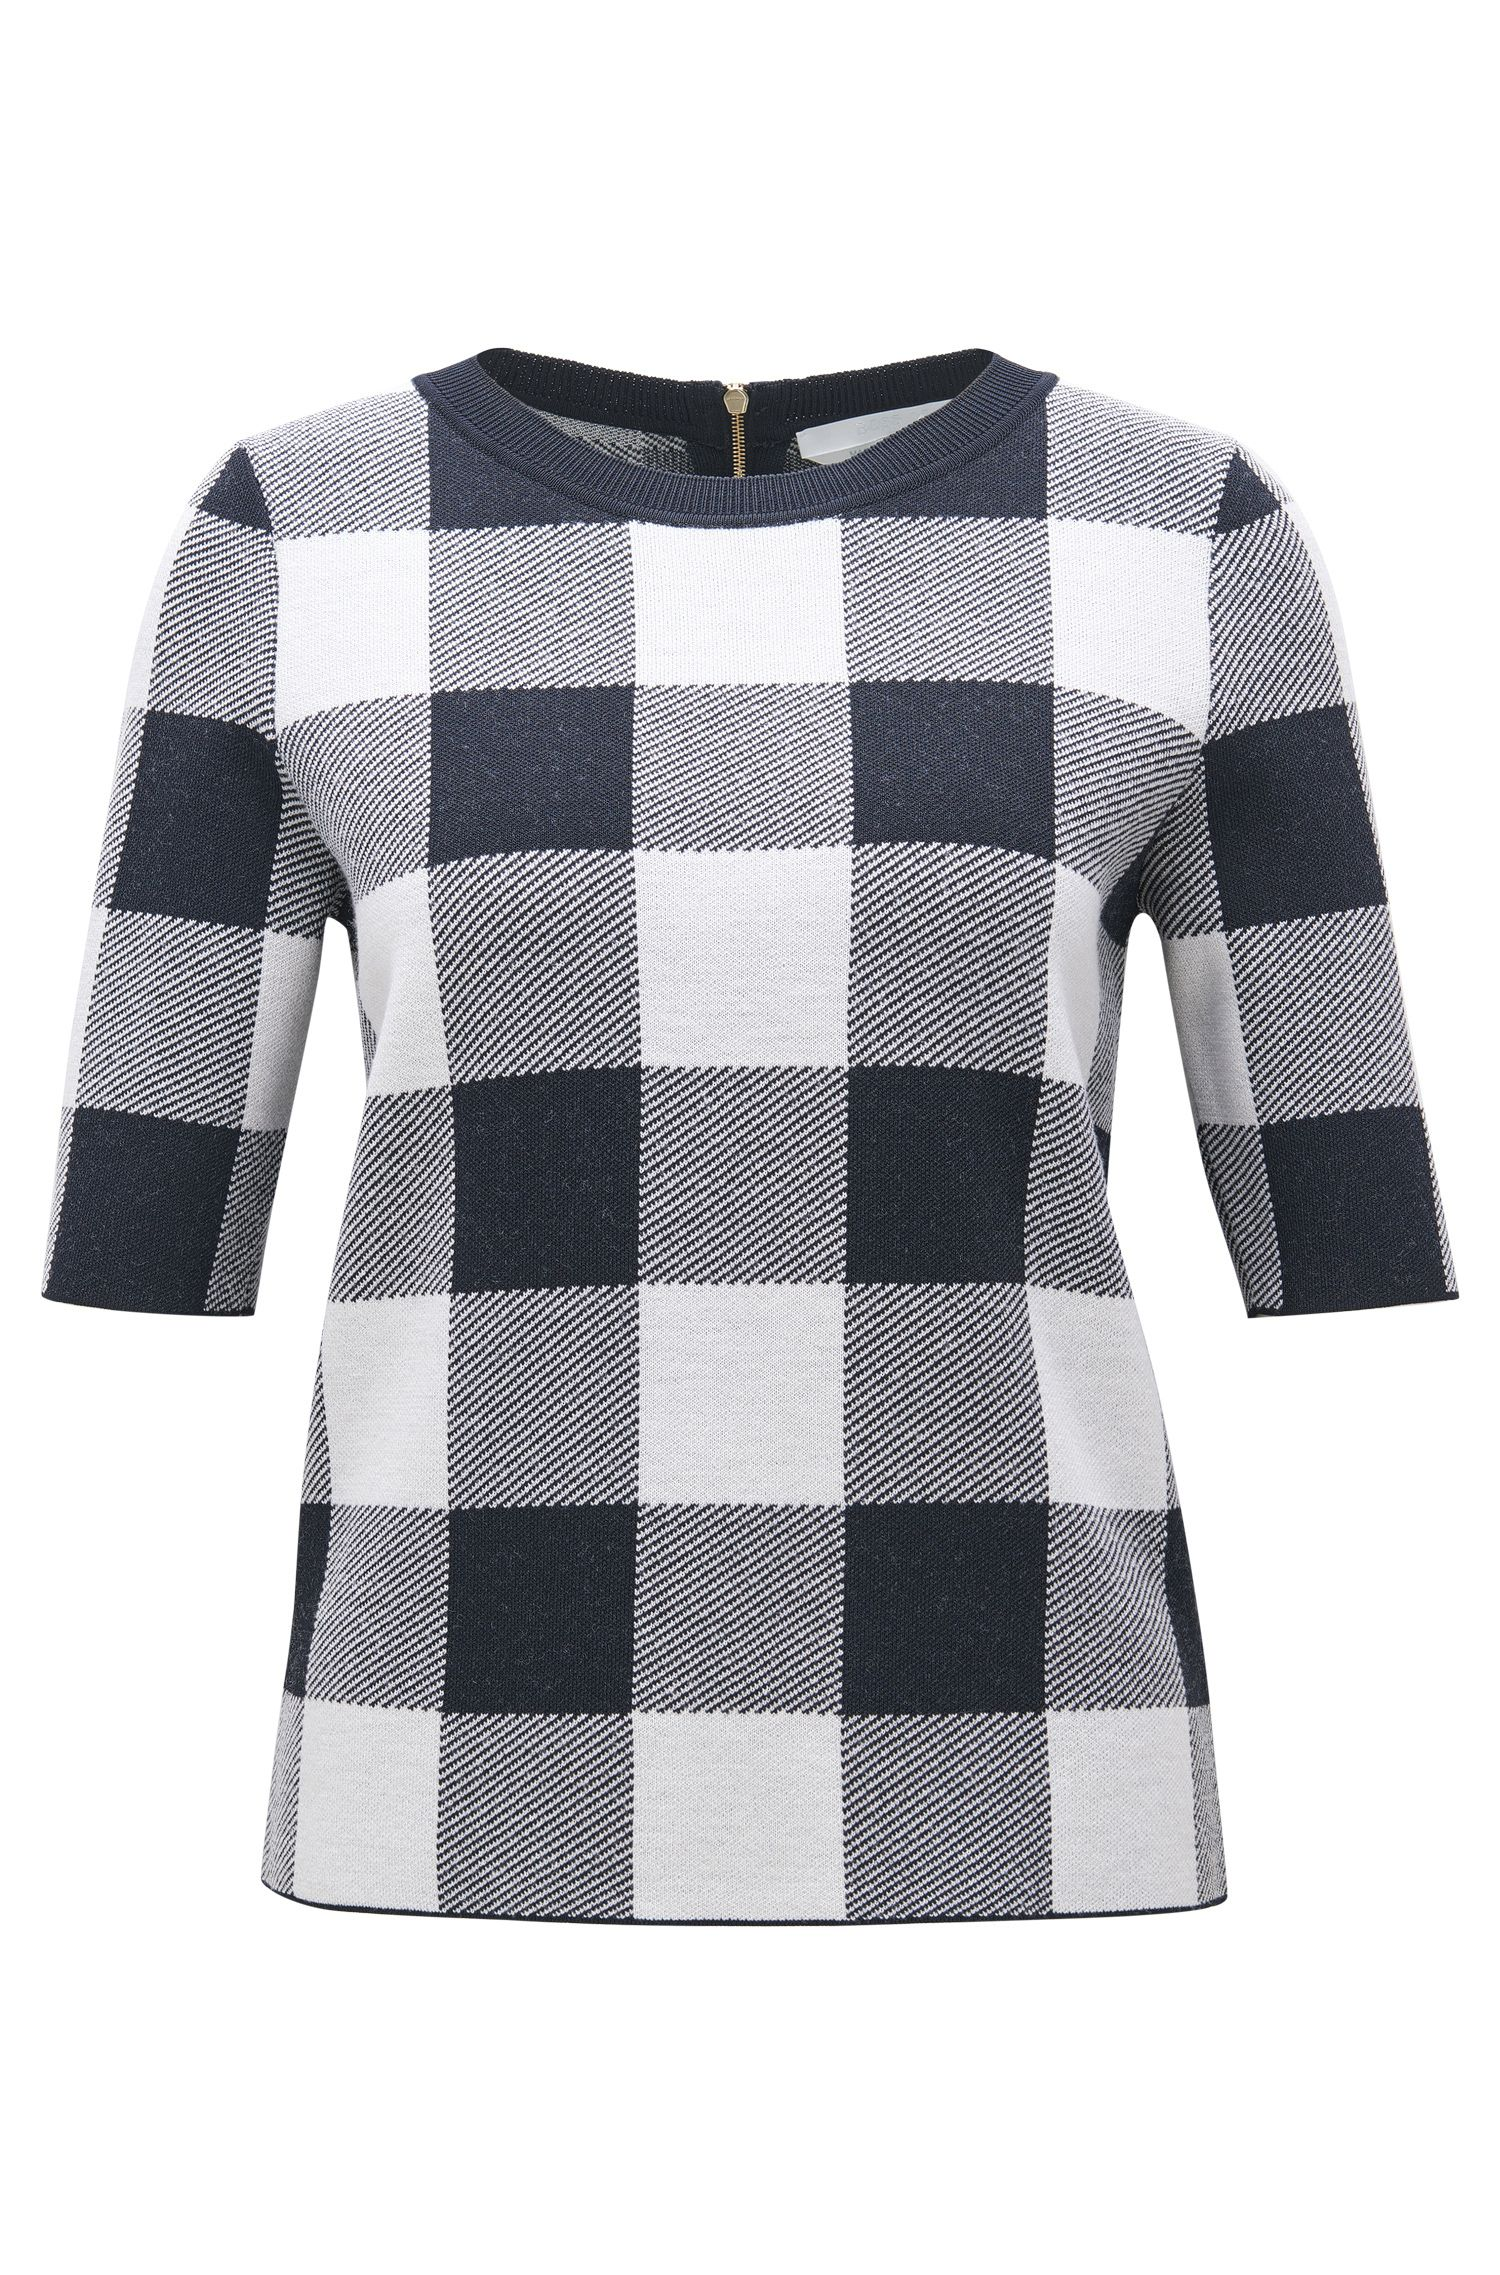 Gingham Wool Blend Knit Top | Floriza